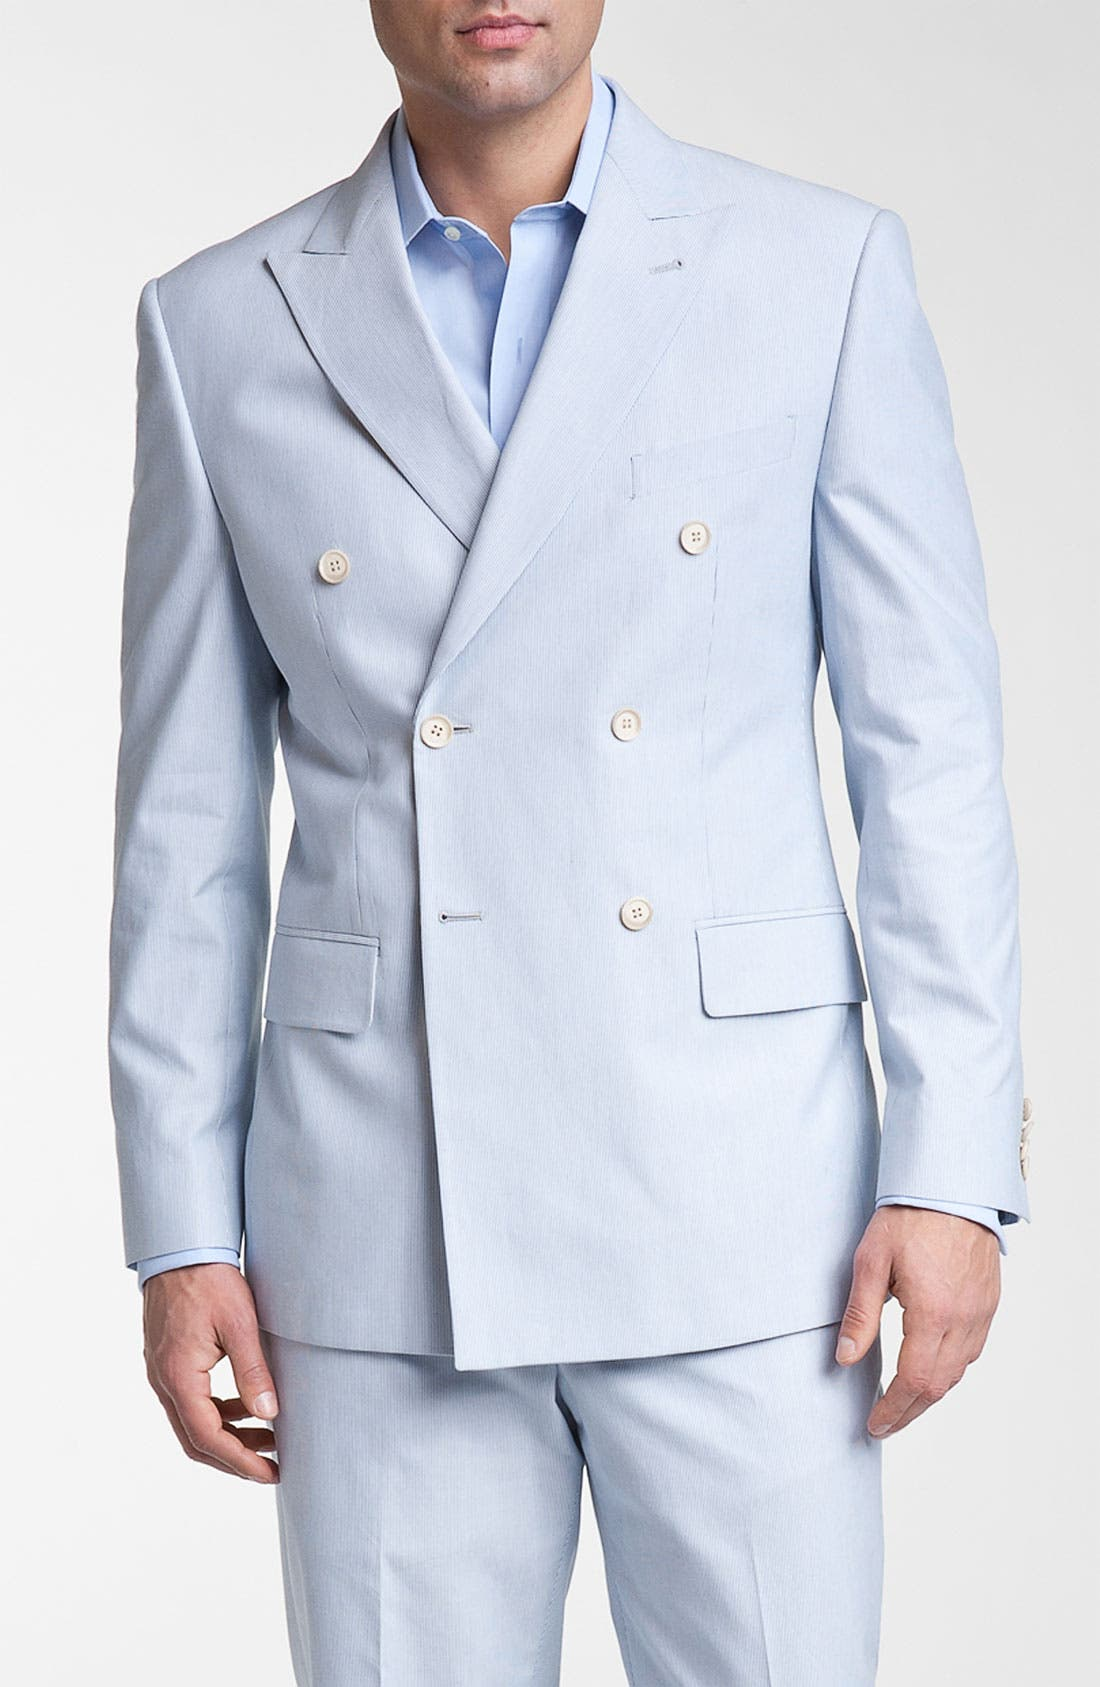 Double Breasted Cotton Seersucker Suit,                             Main thumbnail 1, color,                             400